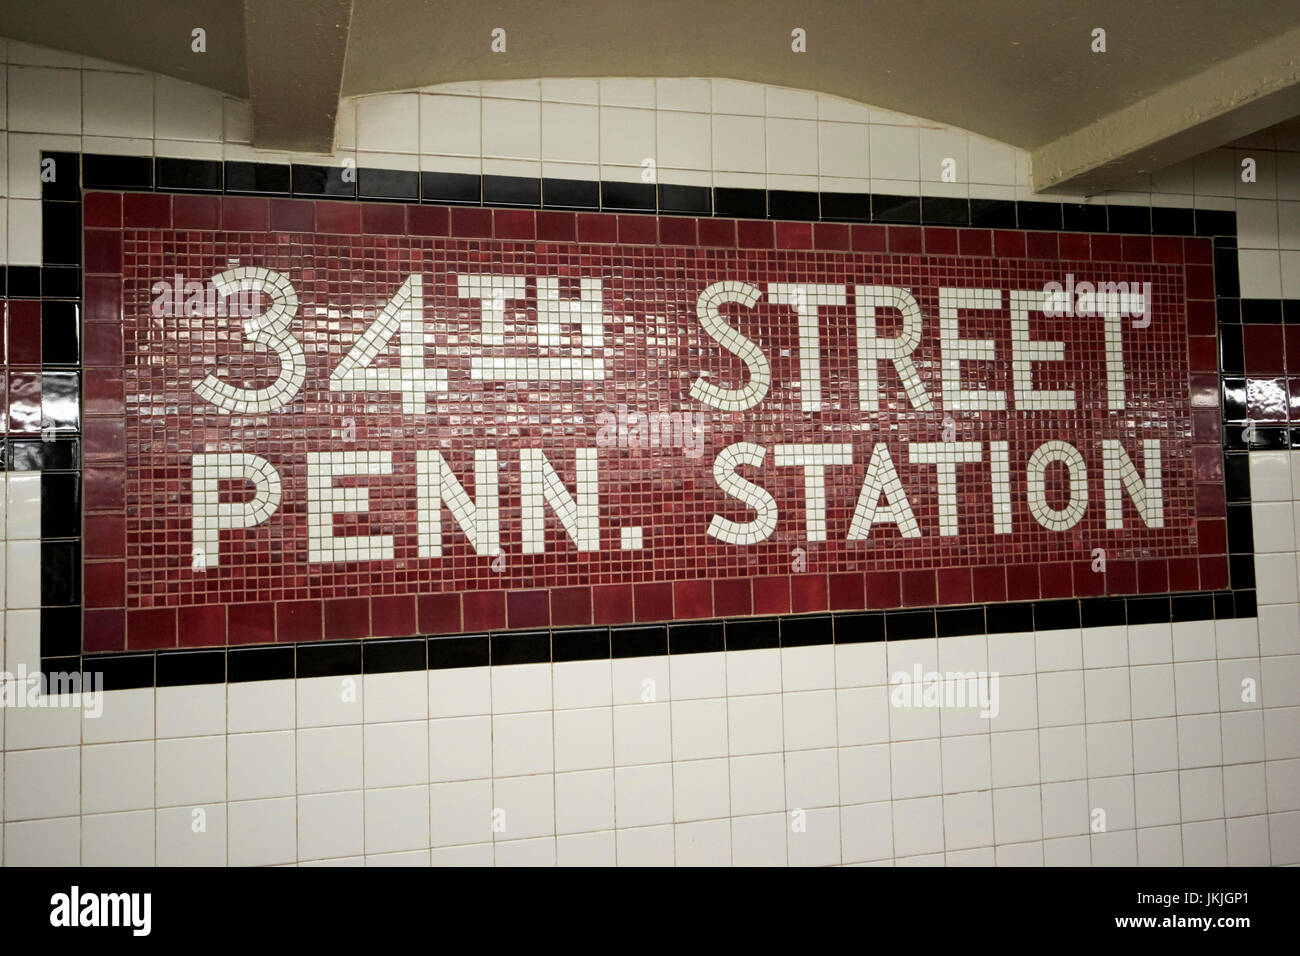 Mosaic old style subway station sign 34th street penn station new york city usa stock